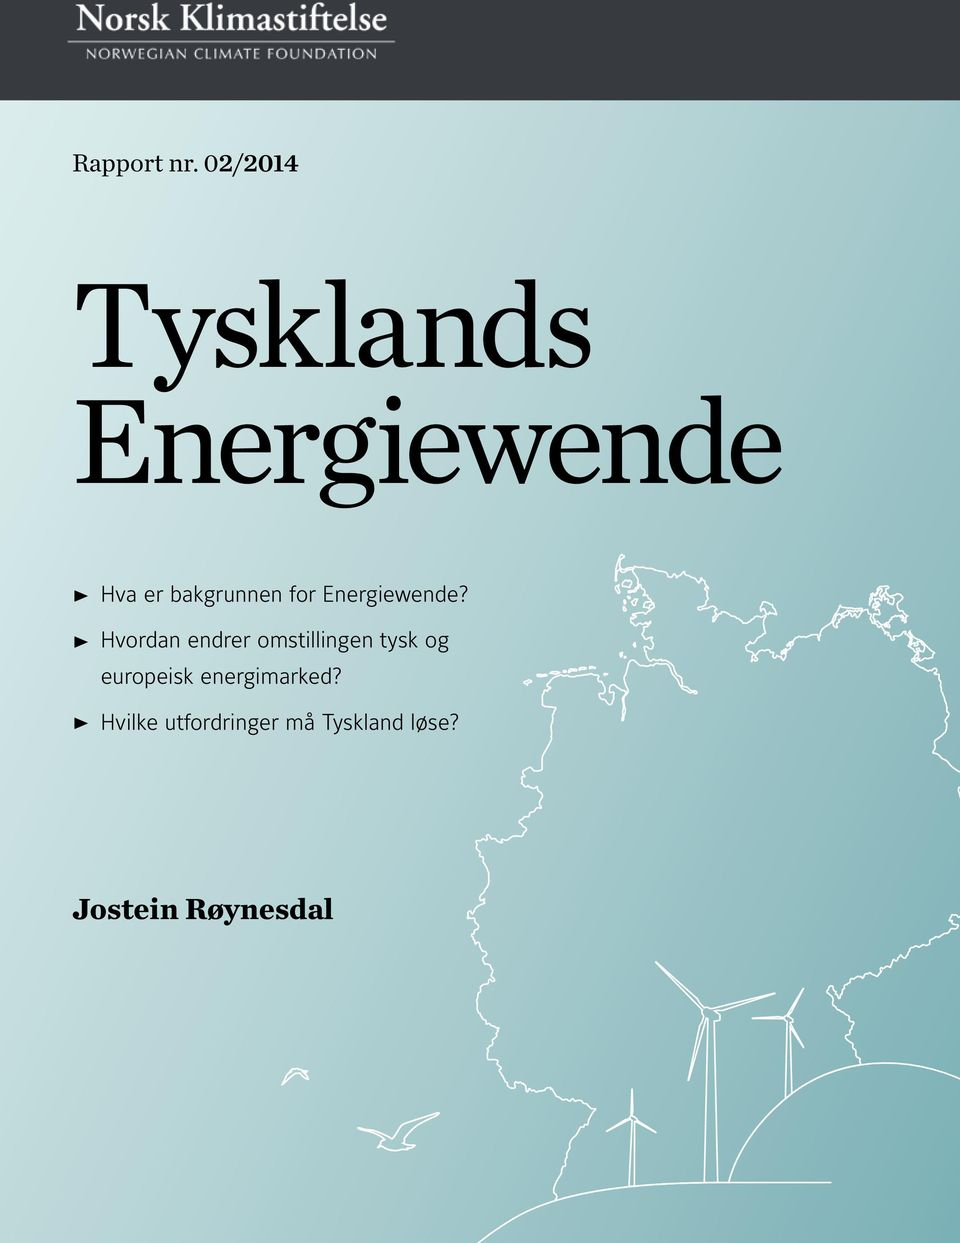 for Energiewende?